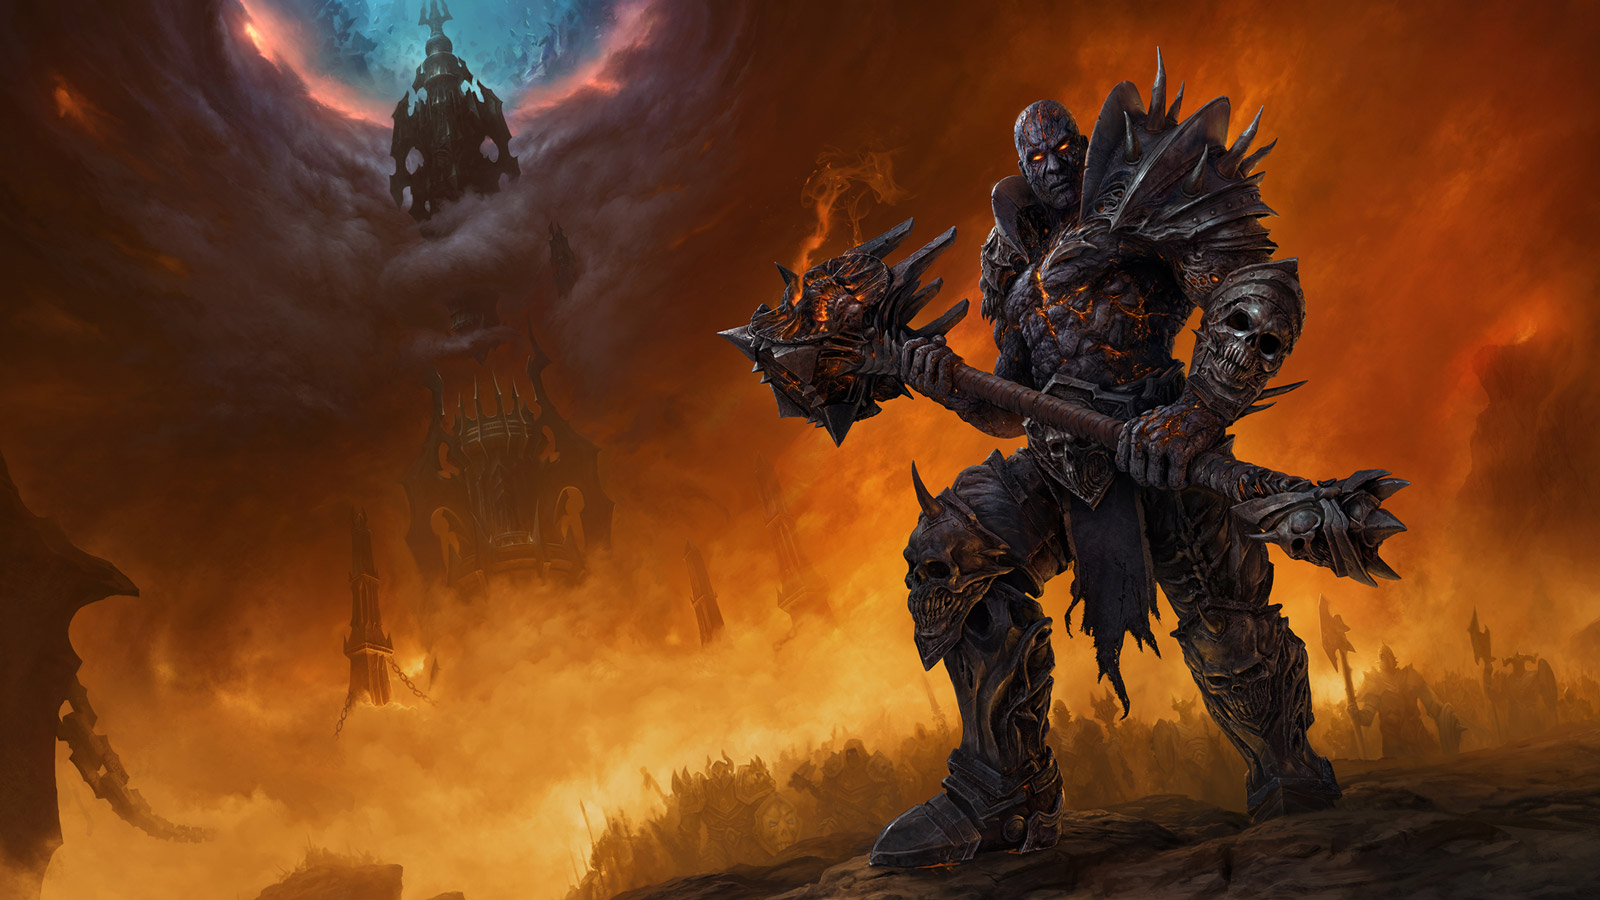 Free World of Warcraft Wallpaper in 1600x900